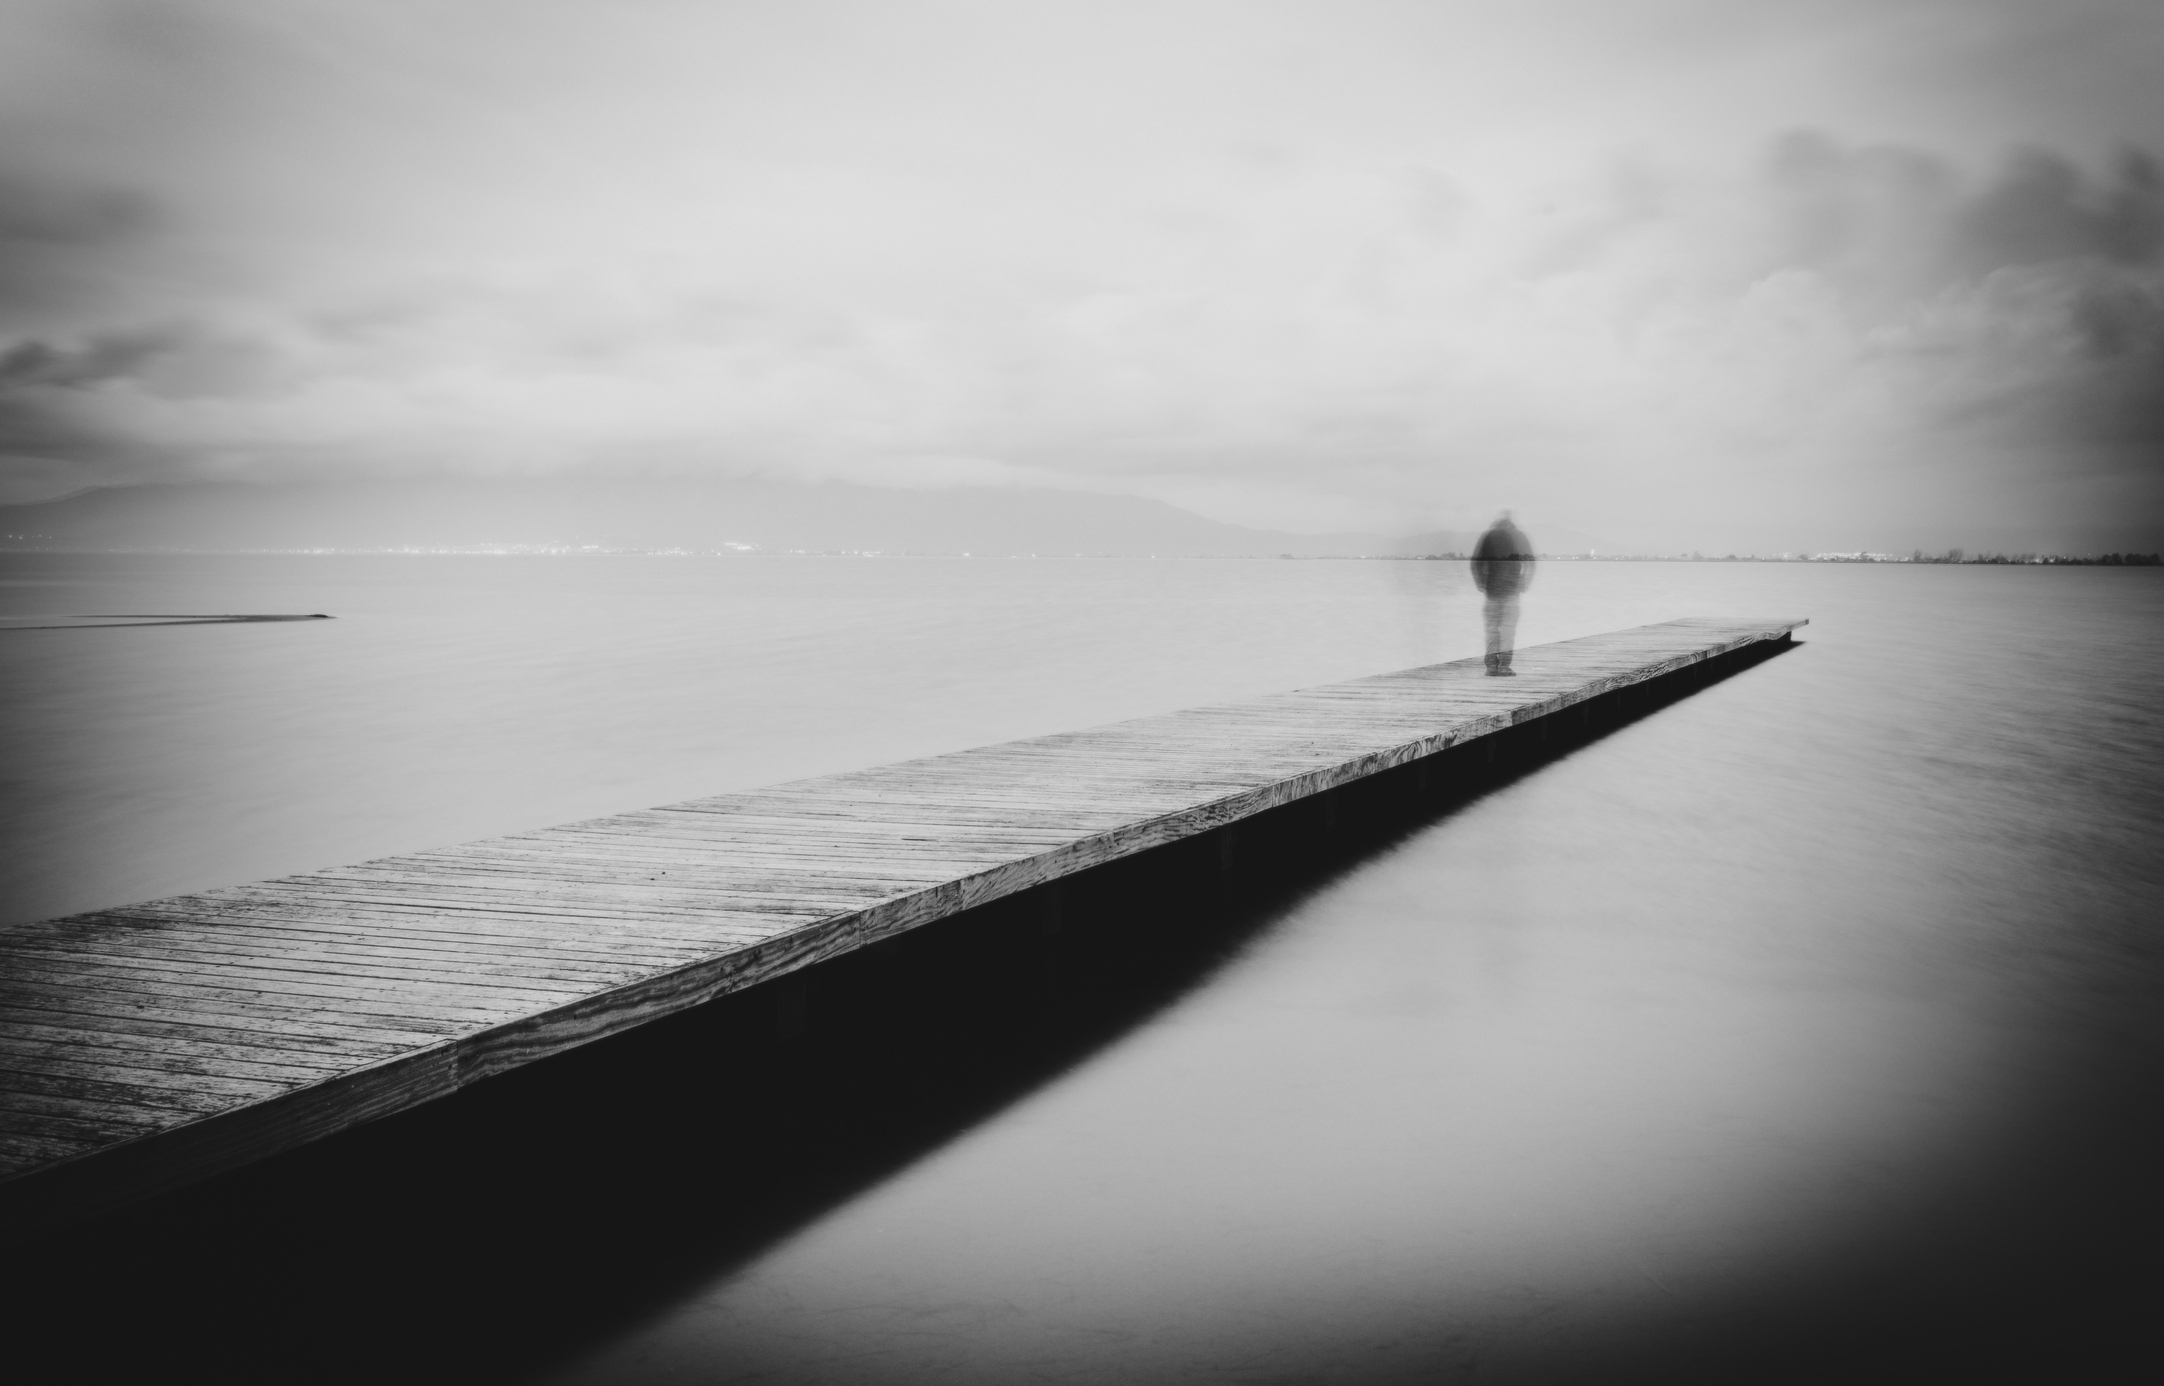 Figure of man walking on a wooden walkway in the sea.